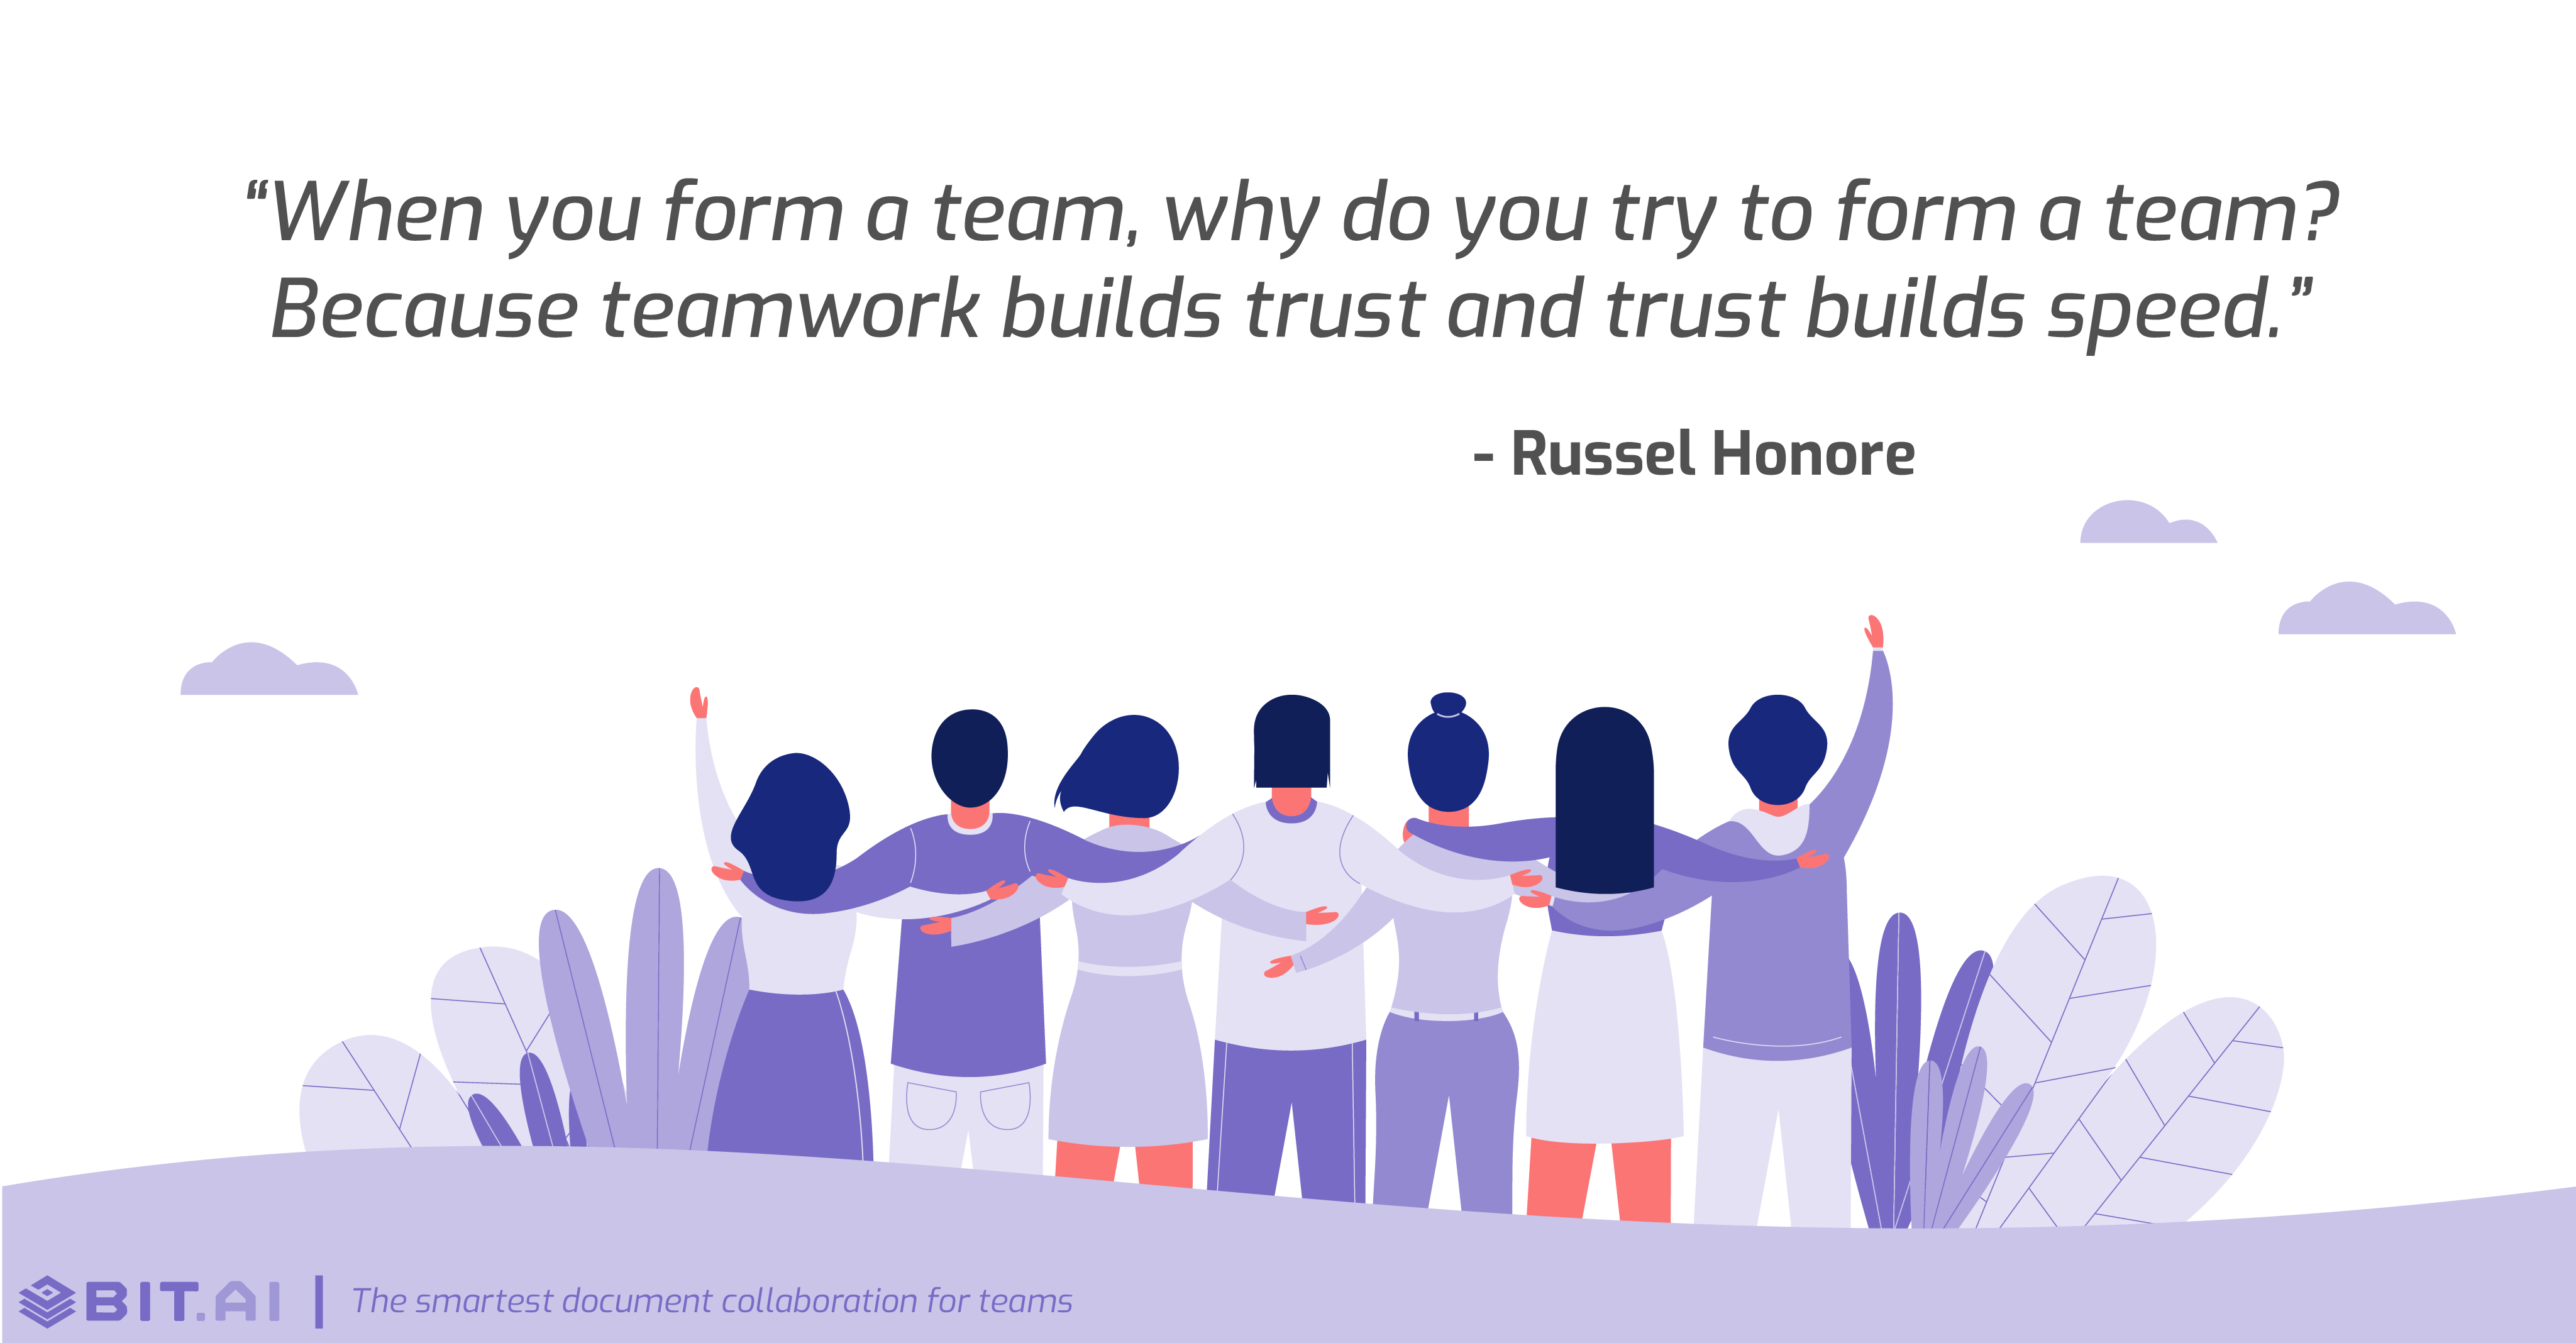 Teamwork collaboration quote by Russel Honore